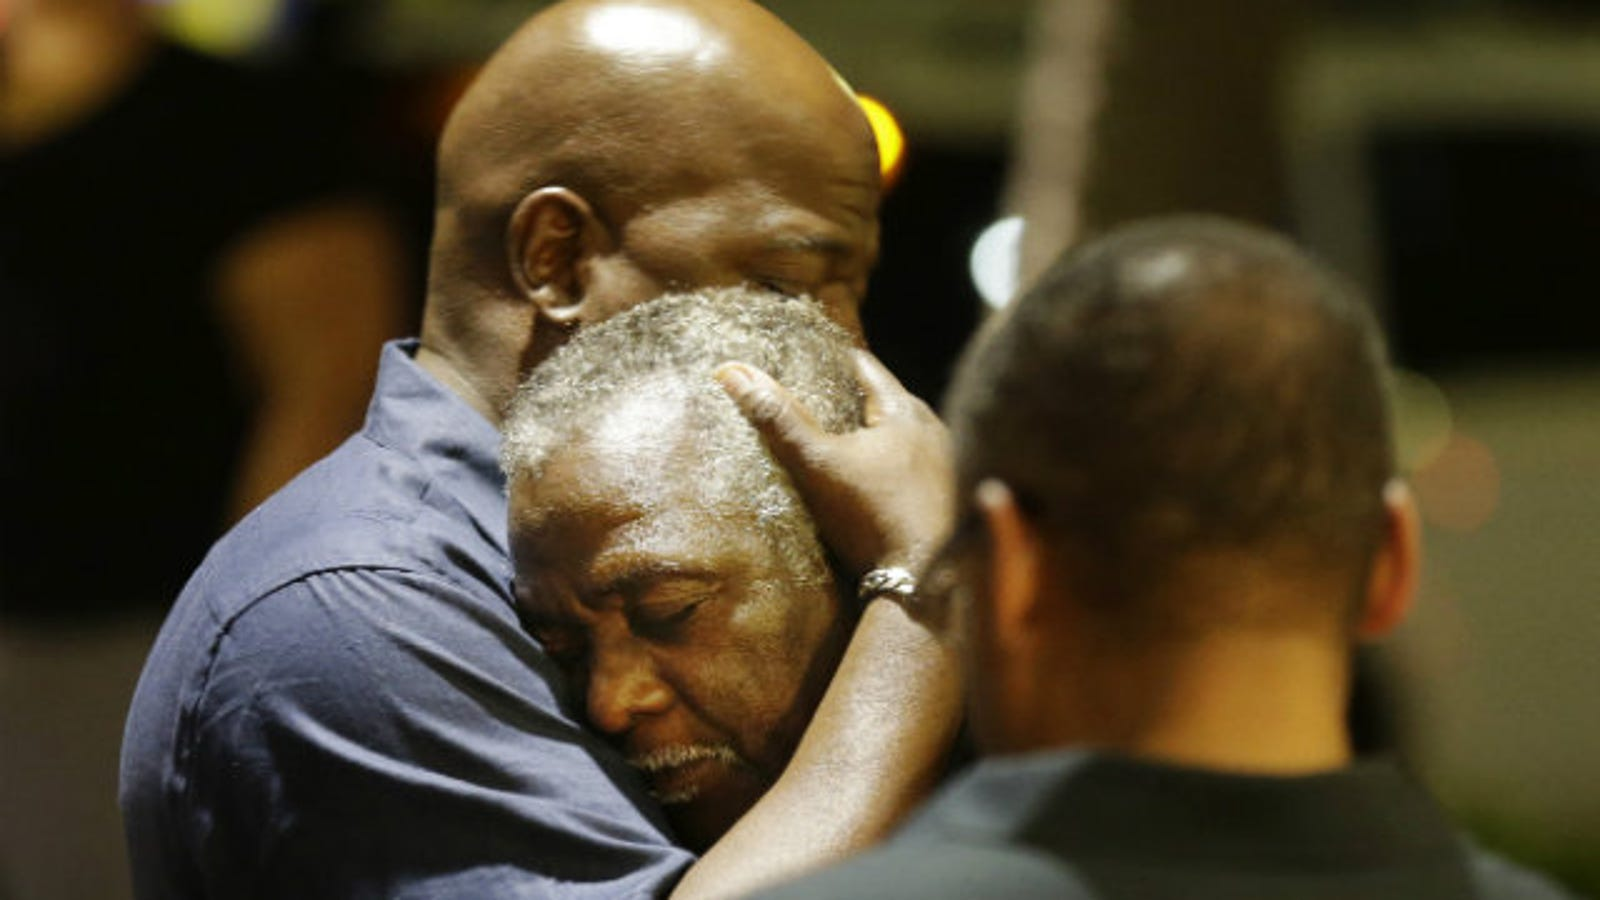 5-Year-Old Girl Survives Charleston Church Shooting By Playing Dead